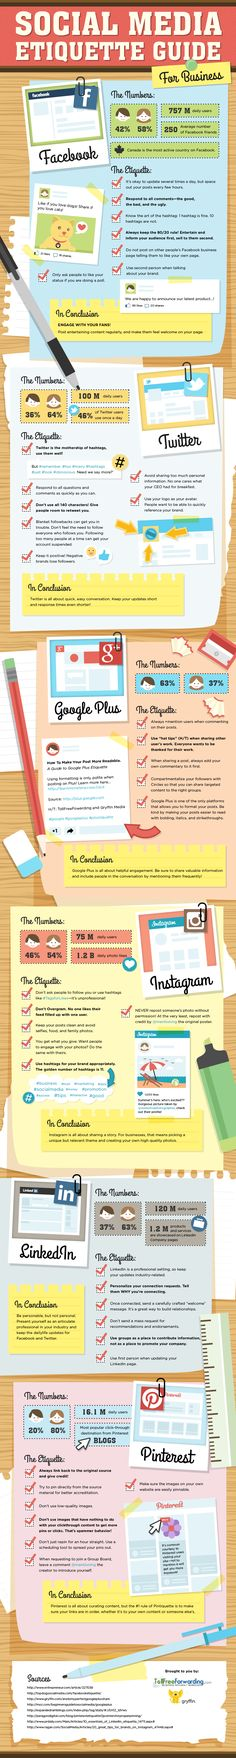 GooglePlus, Twitter, Instagram, Facebook, LinkedIn #Pinterest - #SocialMedia Etiquette Guide For Business - #infographic #SMM #marketing